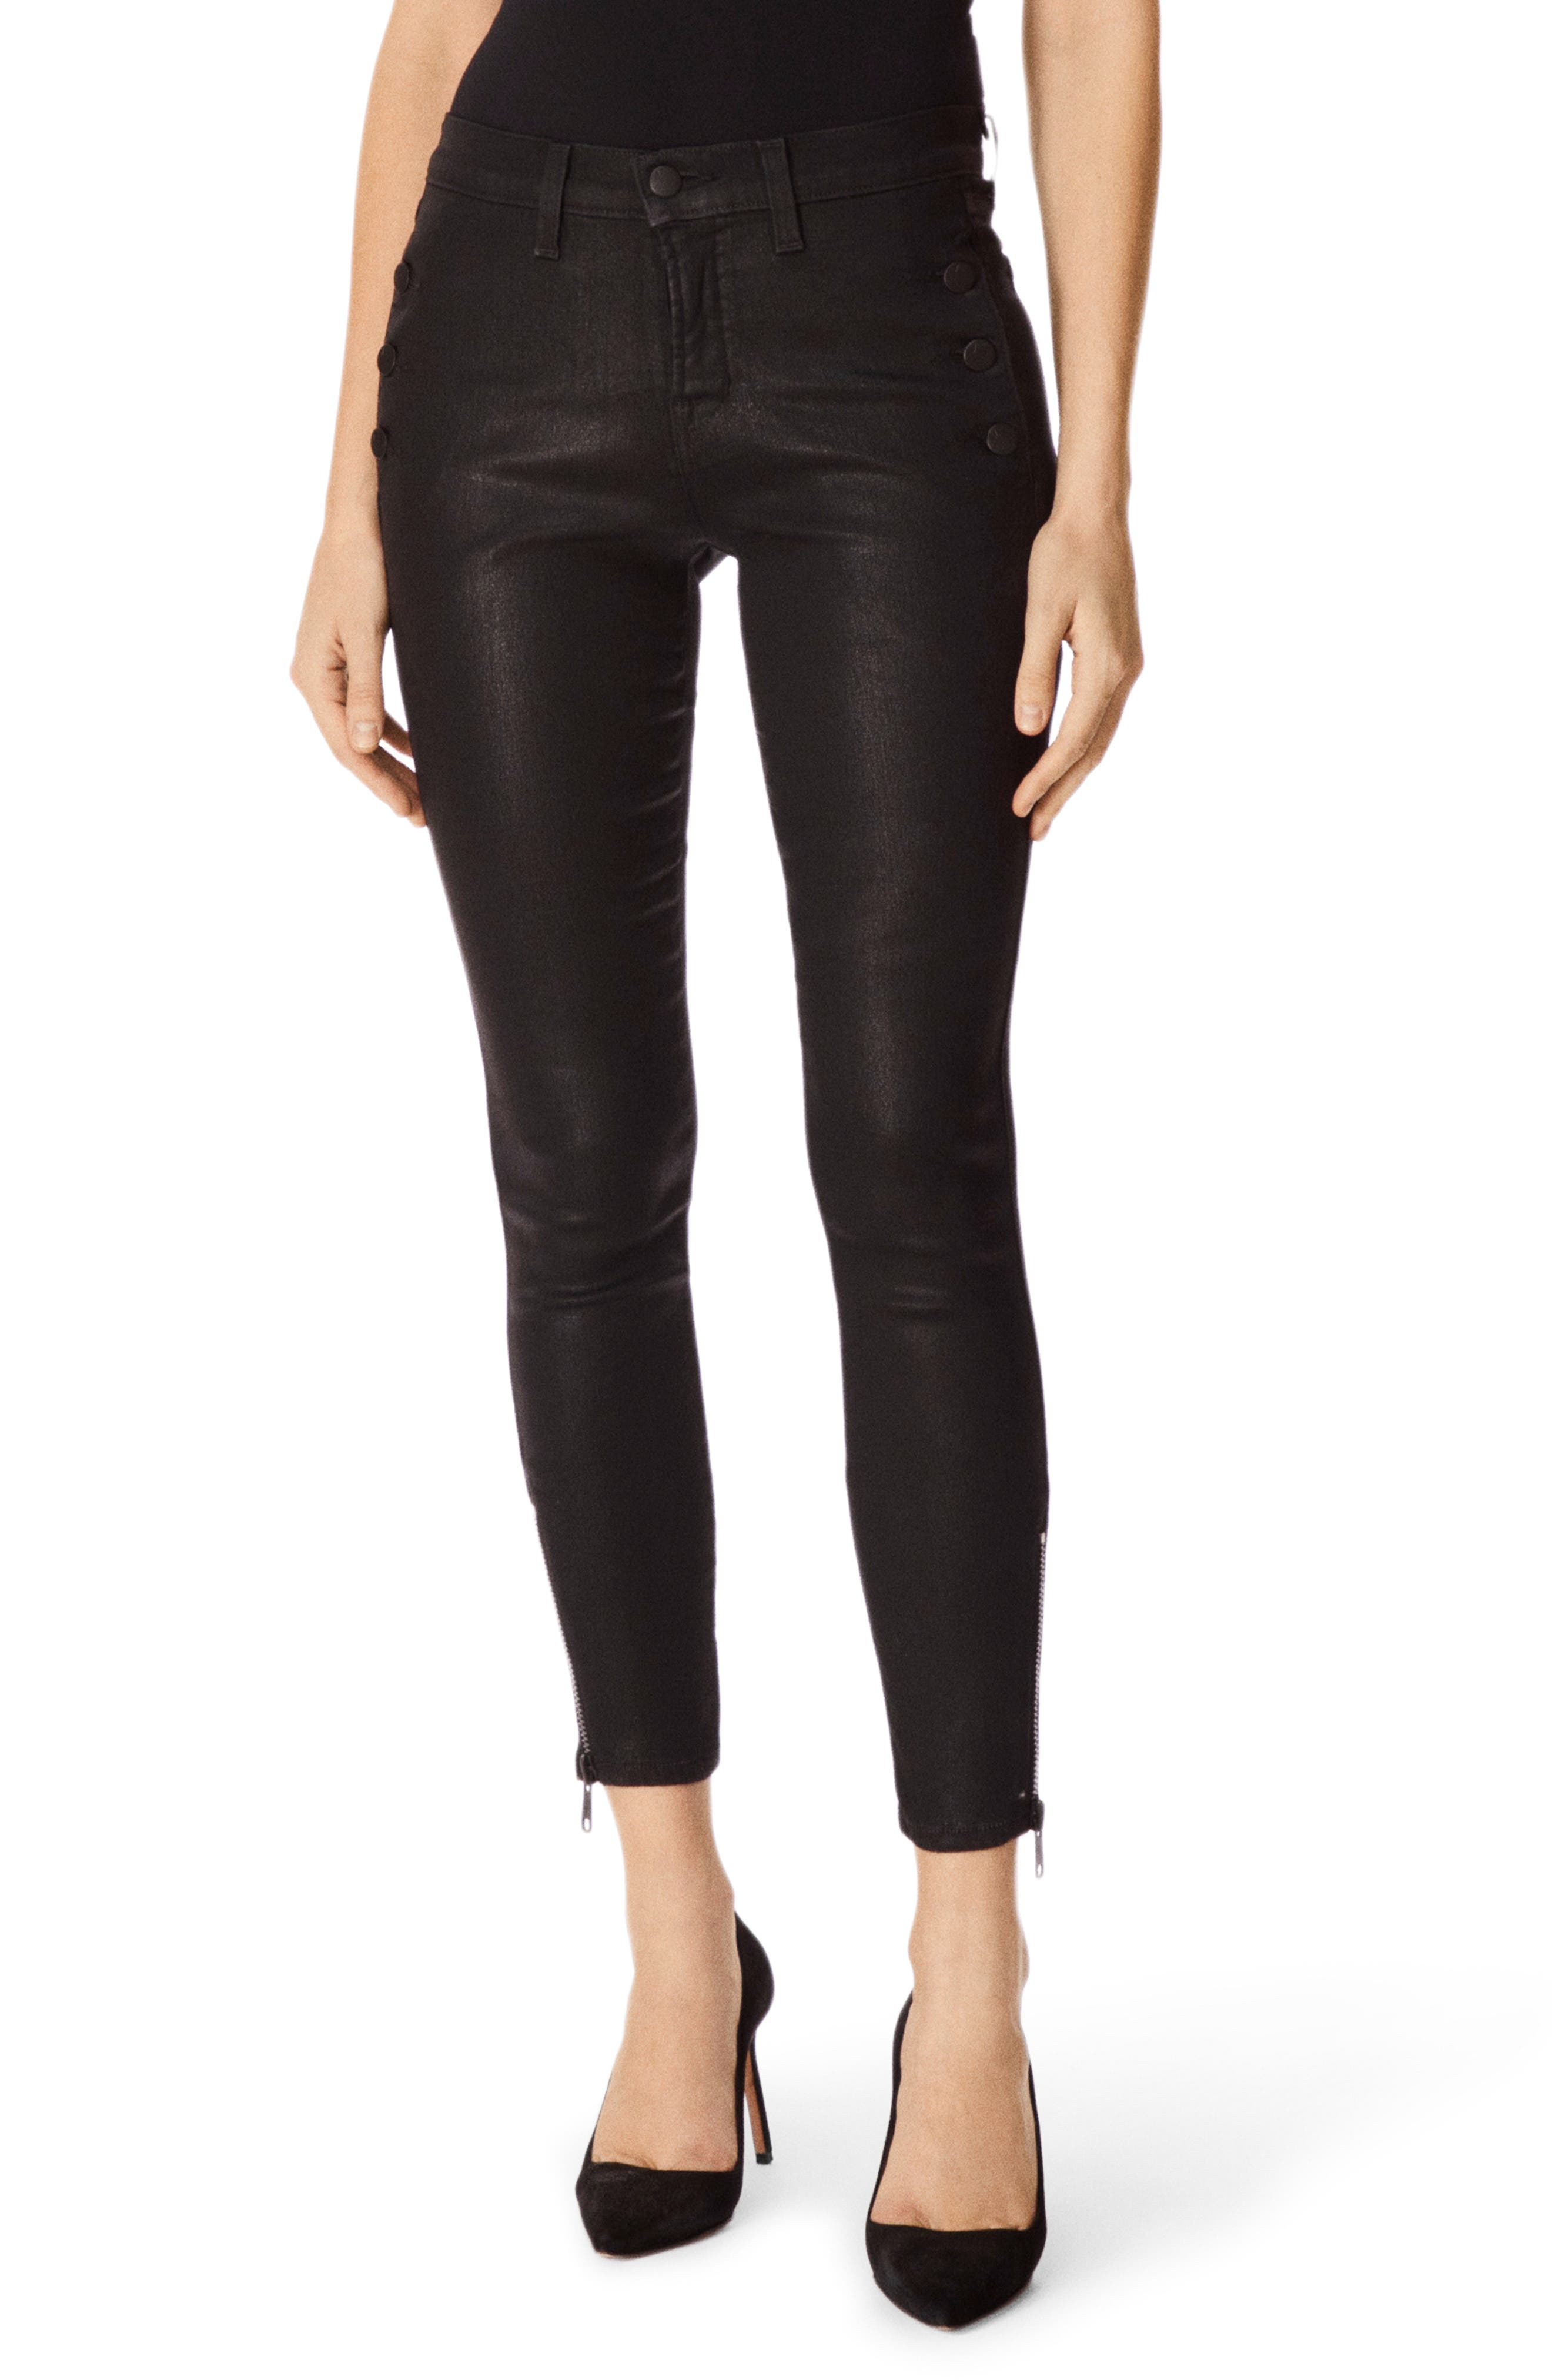 Zion Coated Ankle Skinny Jeans by J Brand